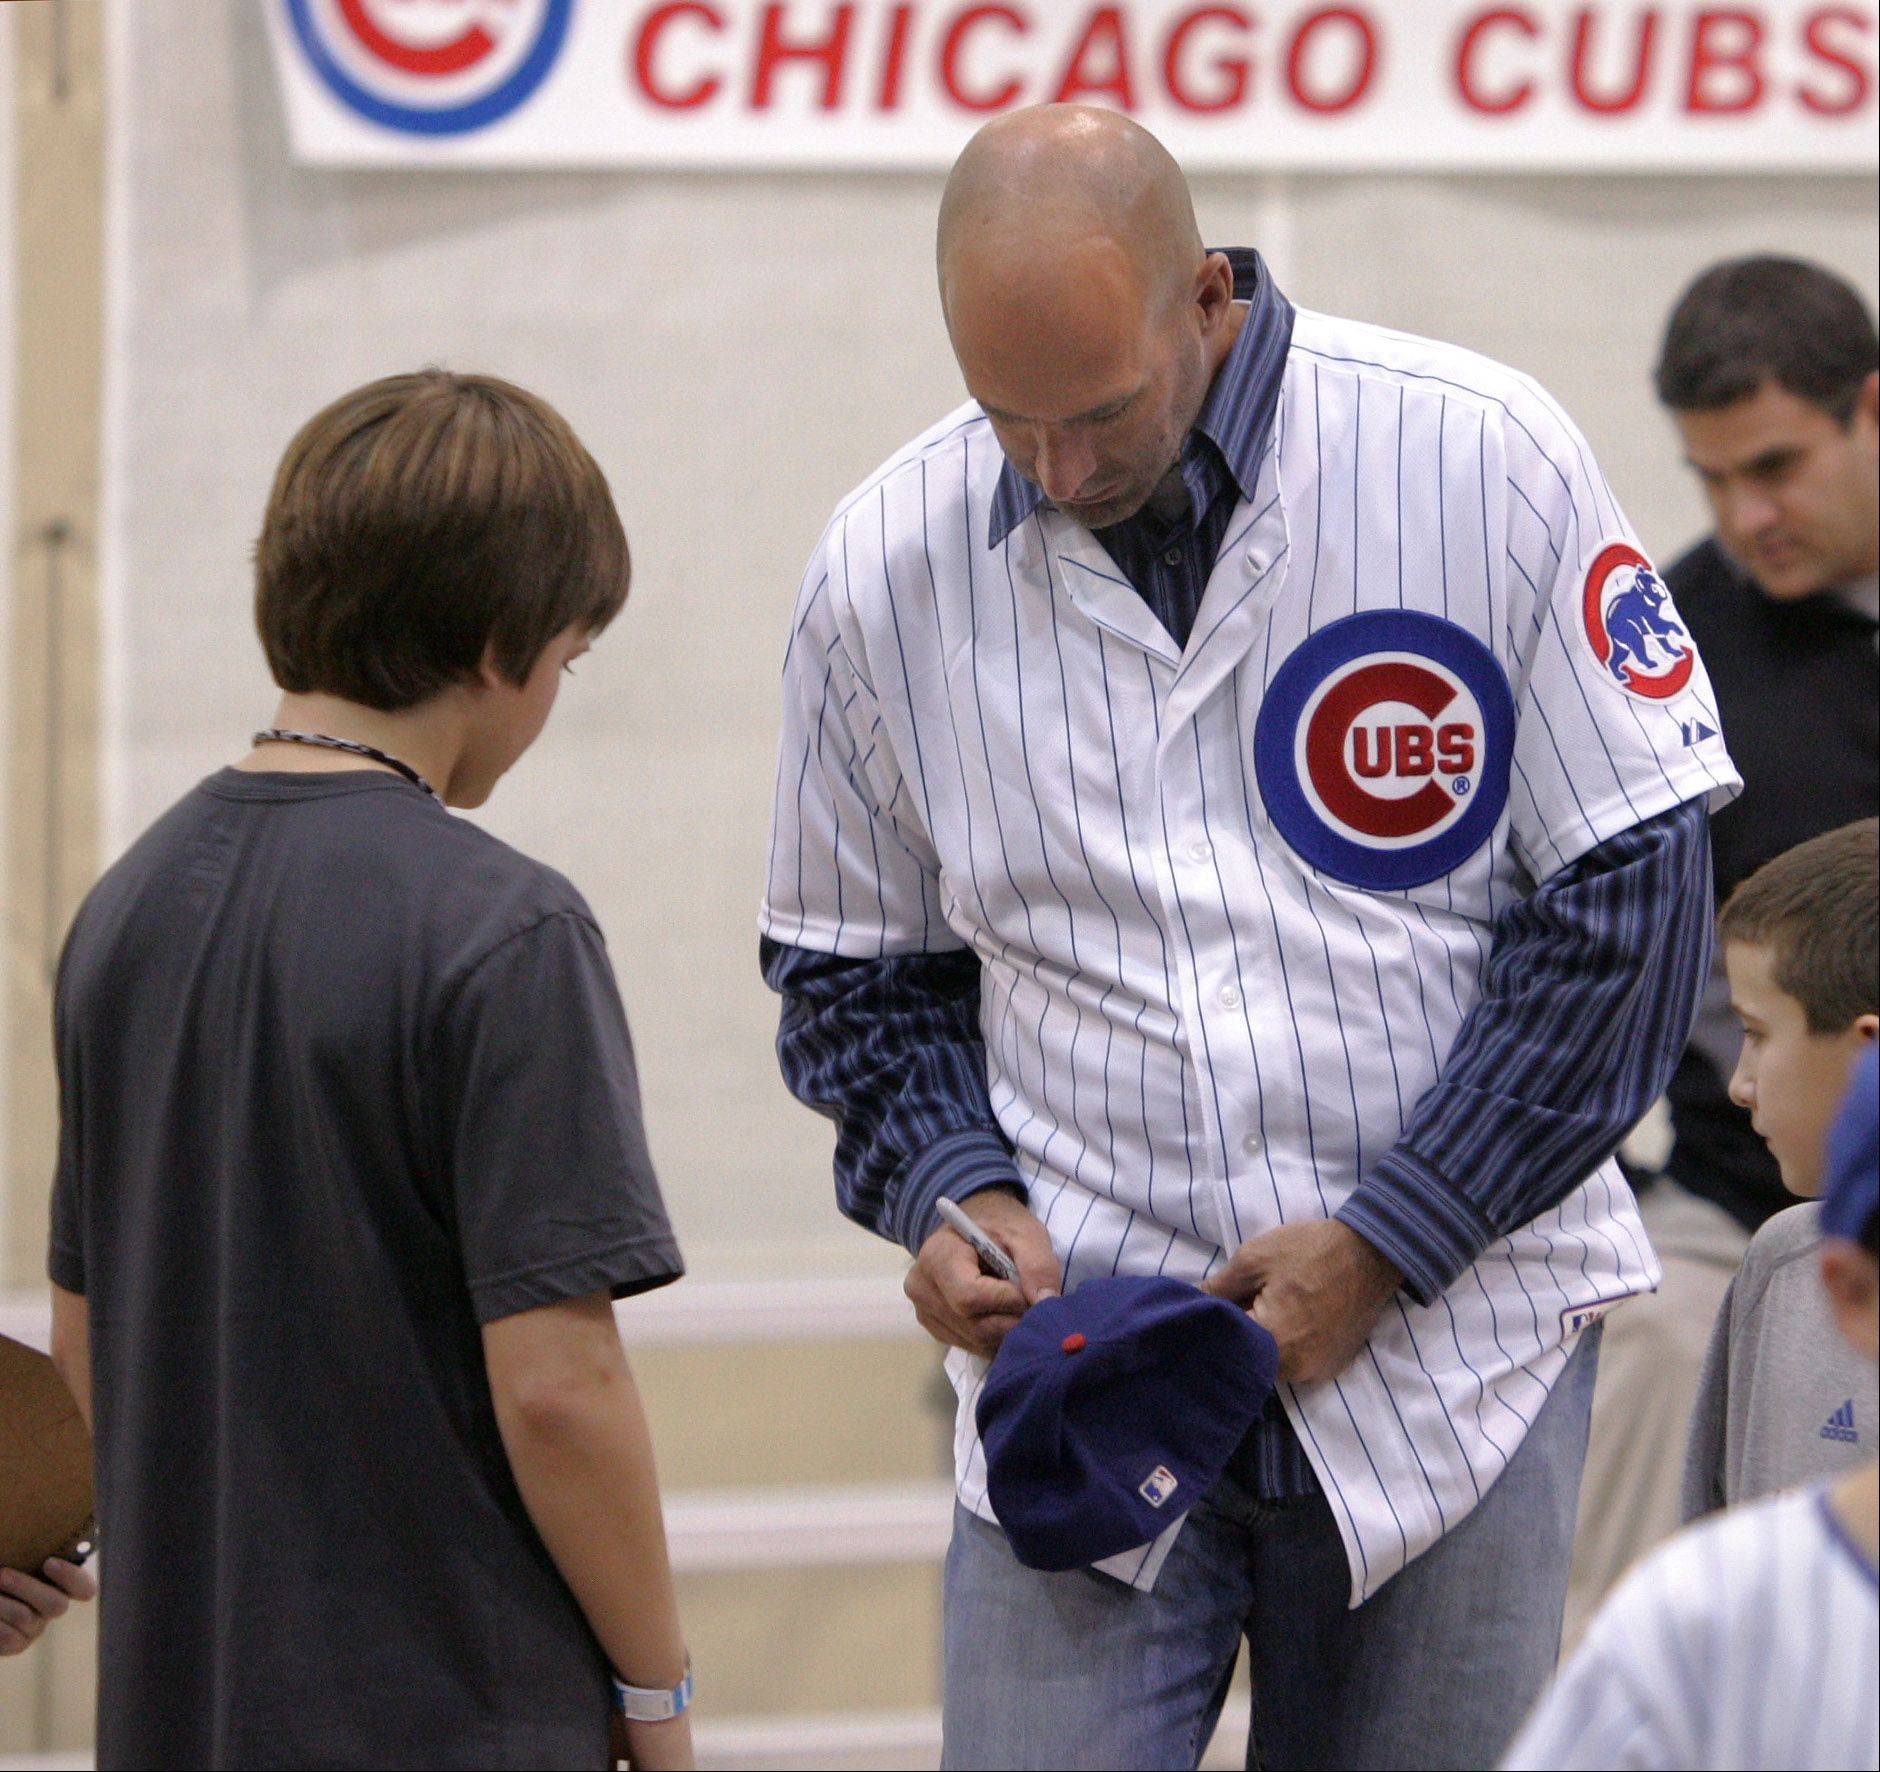 New Cubs manager Dale Sveum signs an autograph during a stop by the Chicago Cubs caravan Thursday as professional players and coaches from the team visit with little league players at the Libertyville Sports Complex.